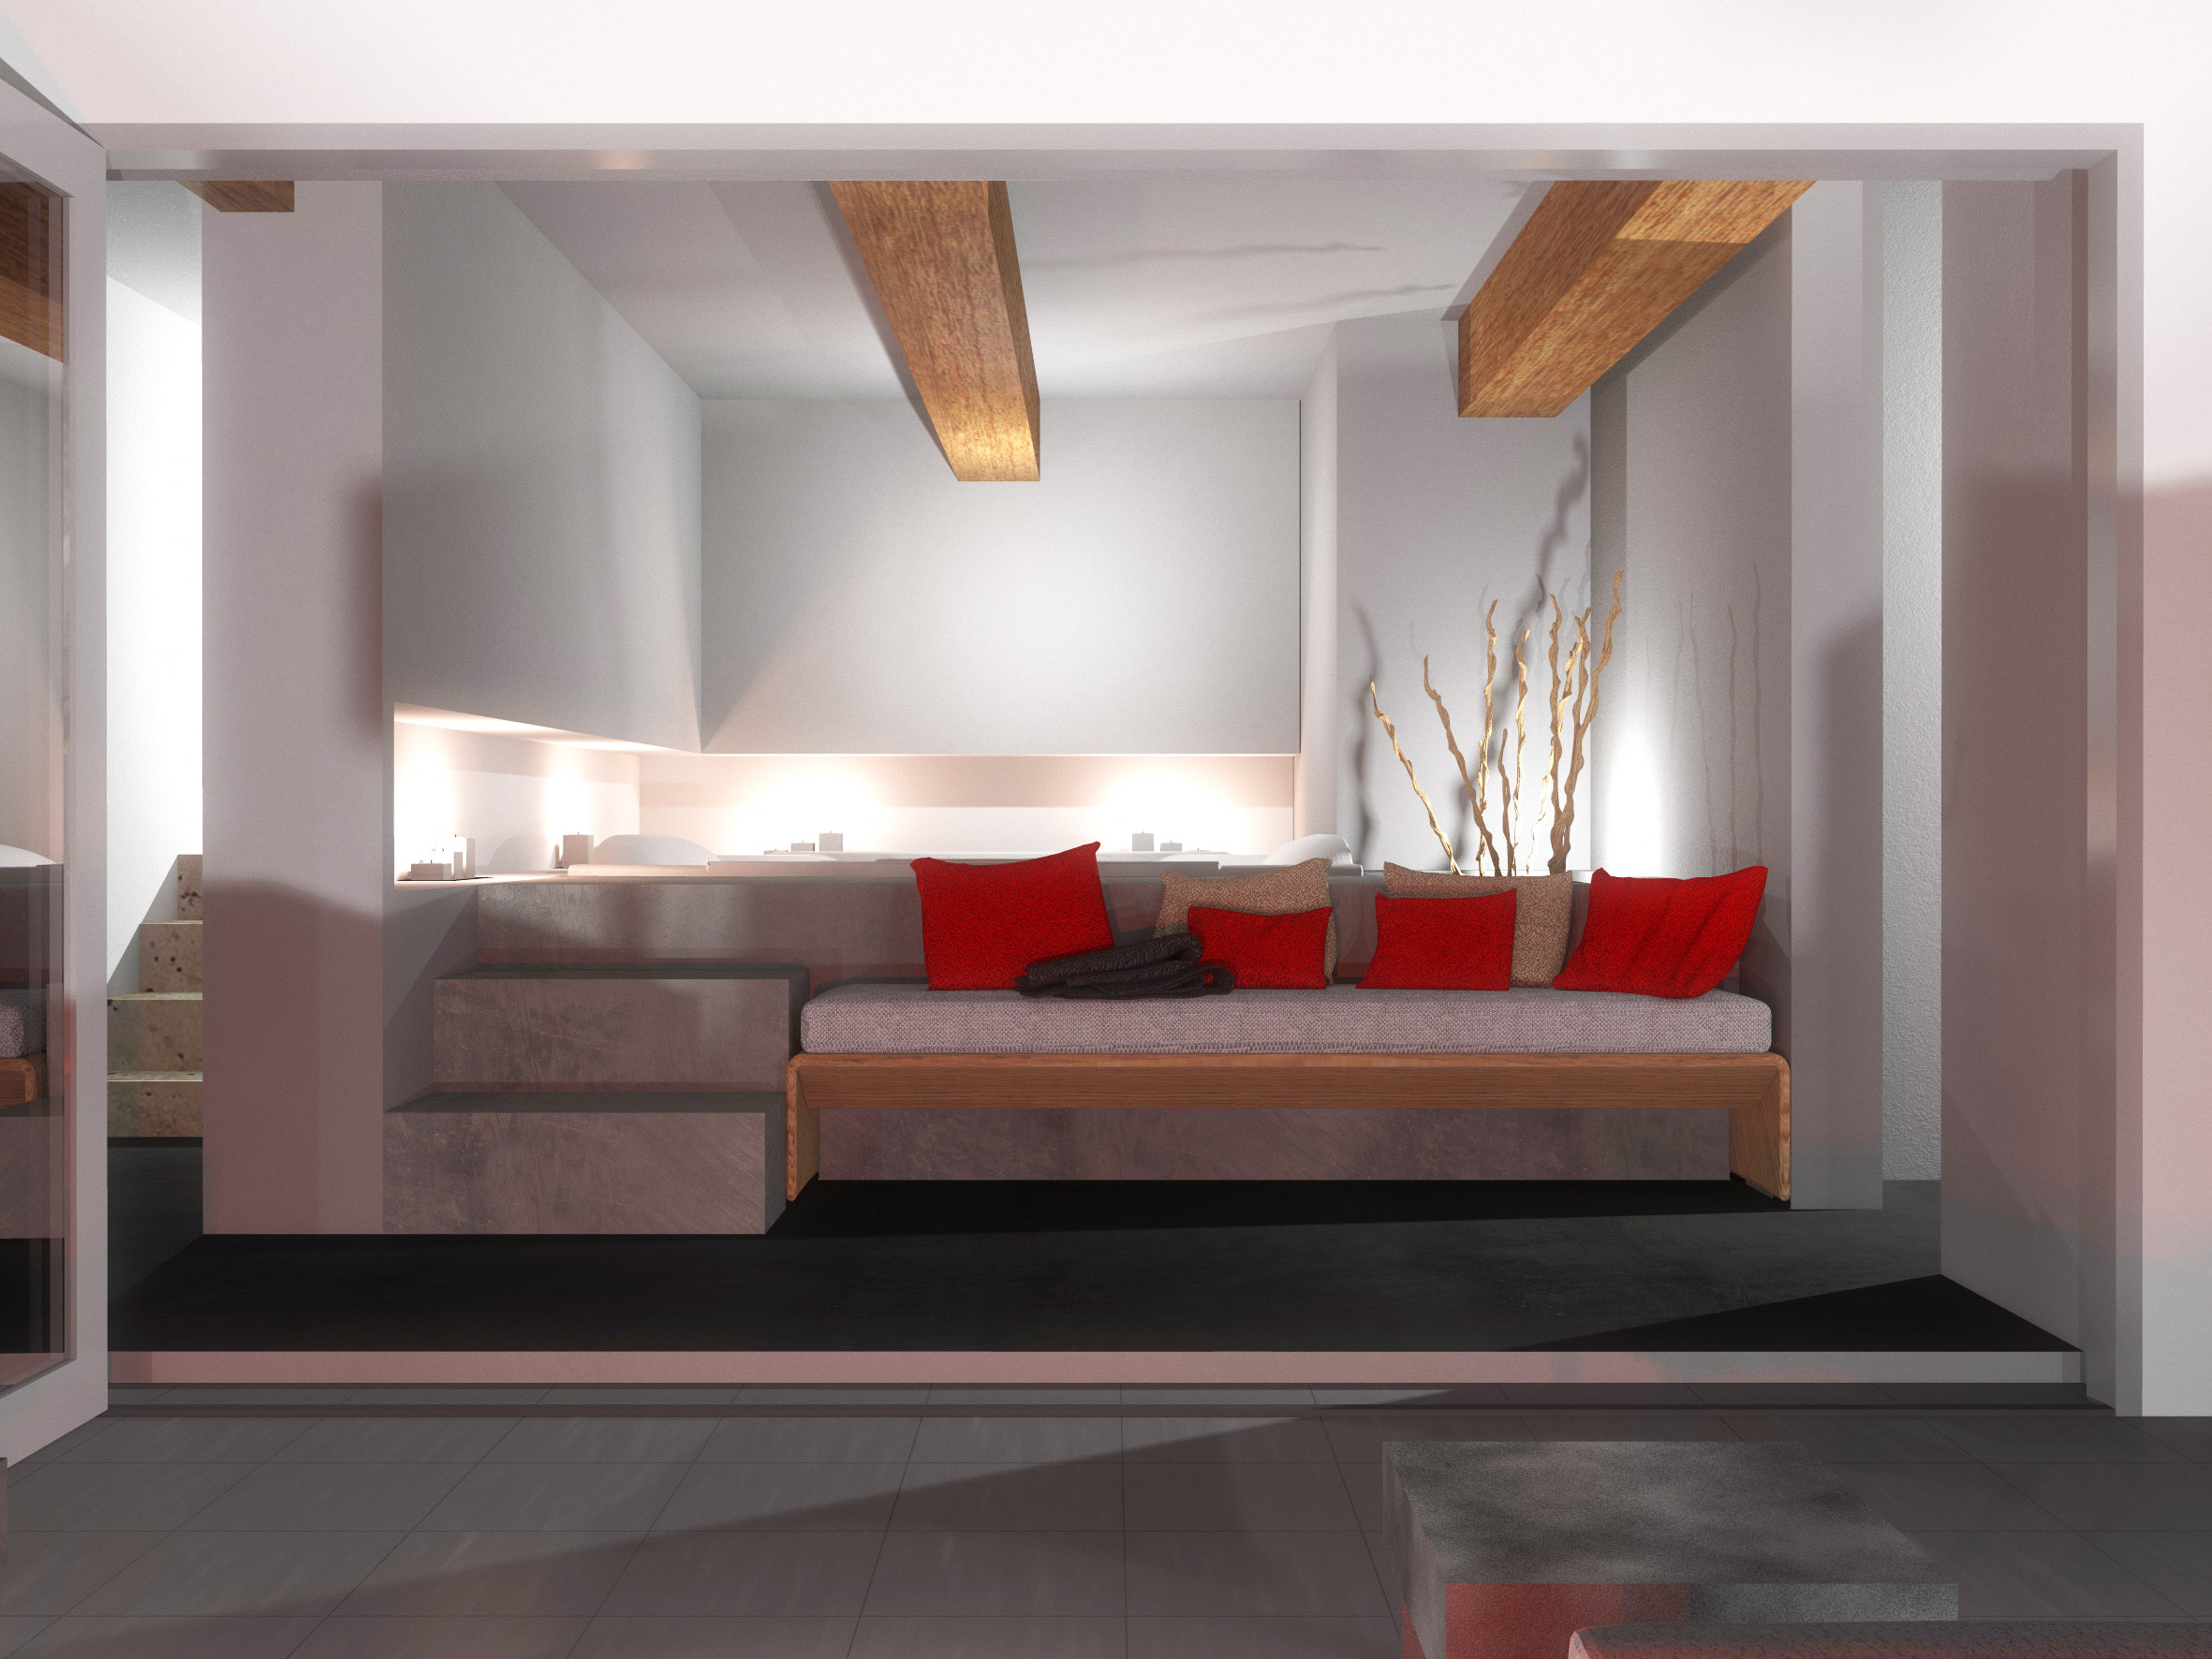 Archi addict architecte n mes architecte int rieur nimes al s for Architecte interieur nimes